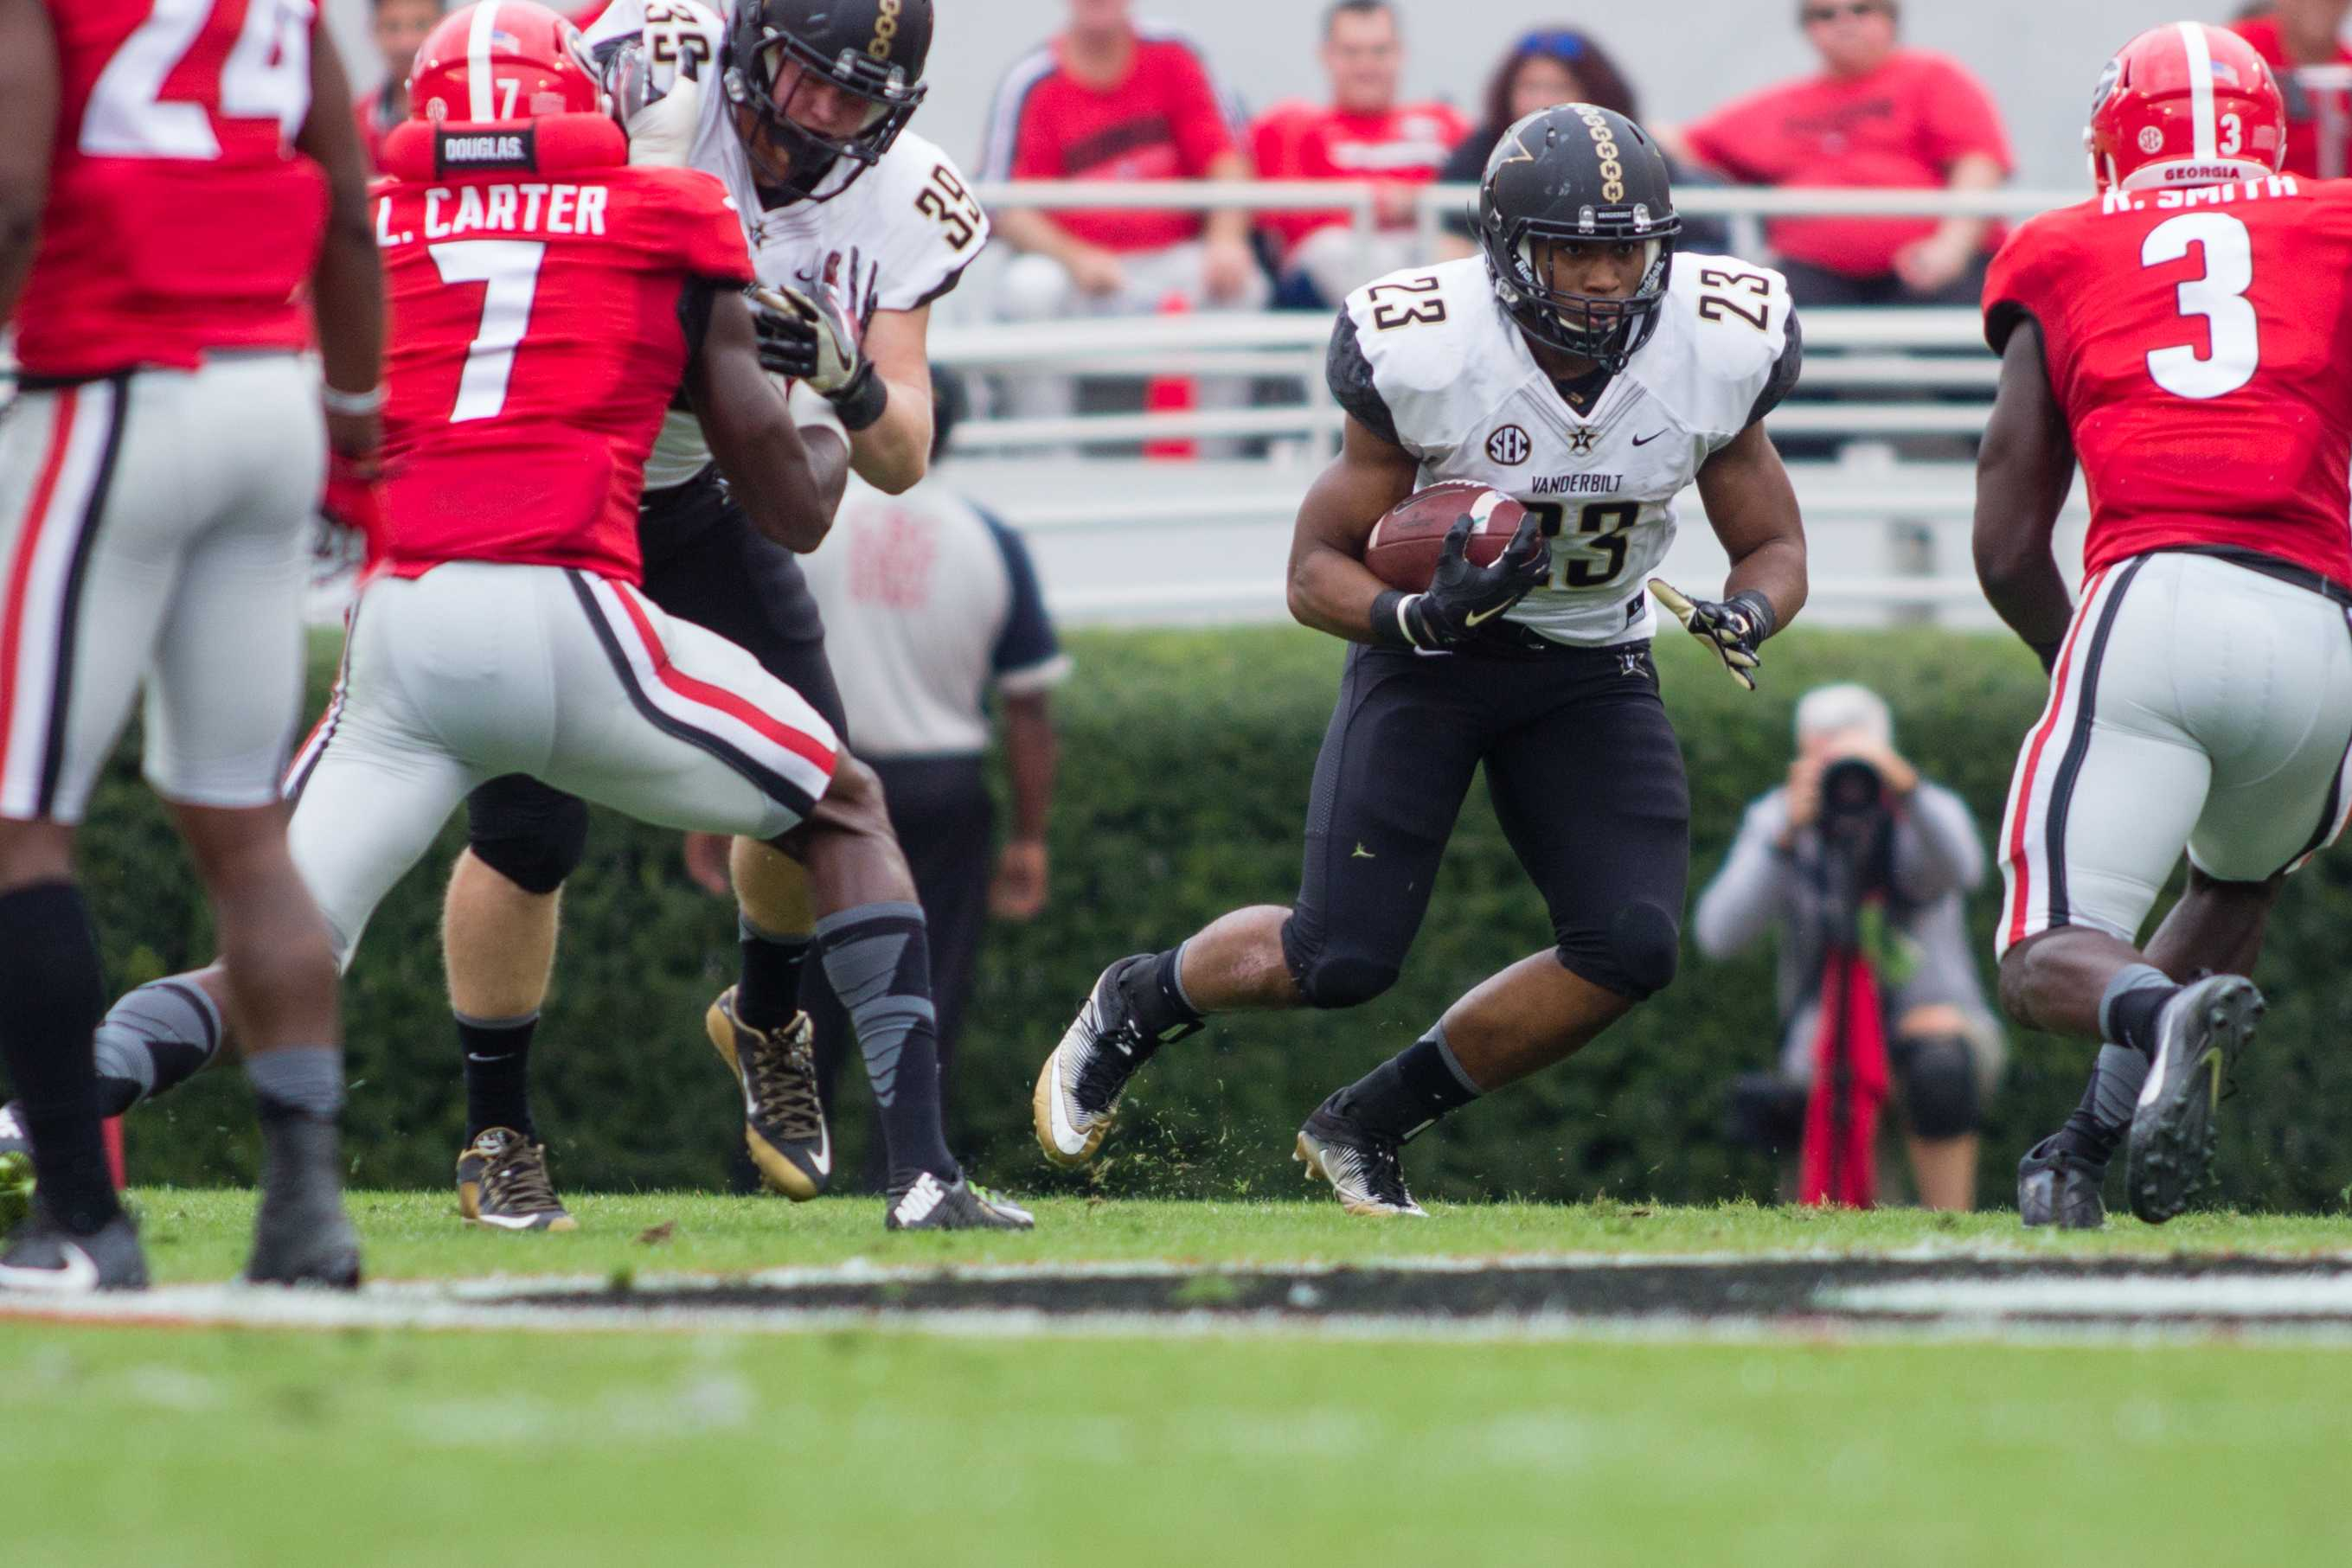 October 15th, 2016 – Khari Blasingame (23) runs with the ball during Vanderbilt's 17-16 win against the University of Georgia in Sanford Stadium Saturday afternoon. Photo by Blake Dover.